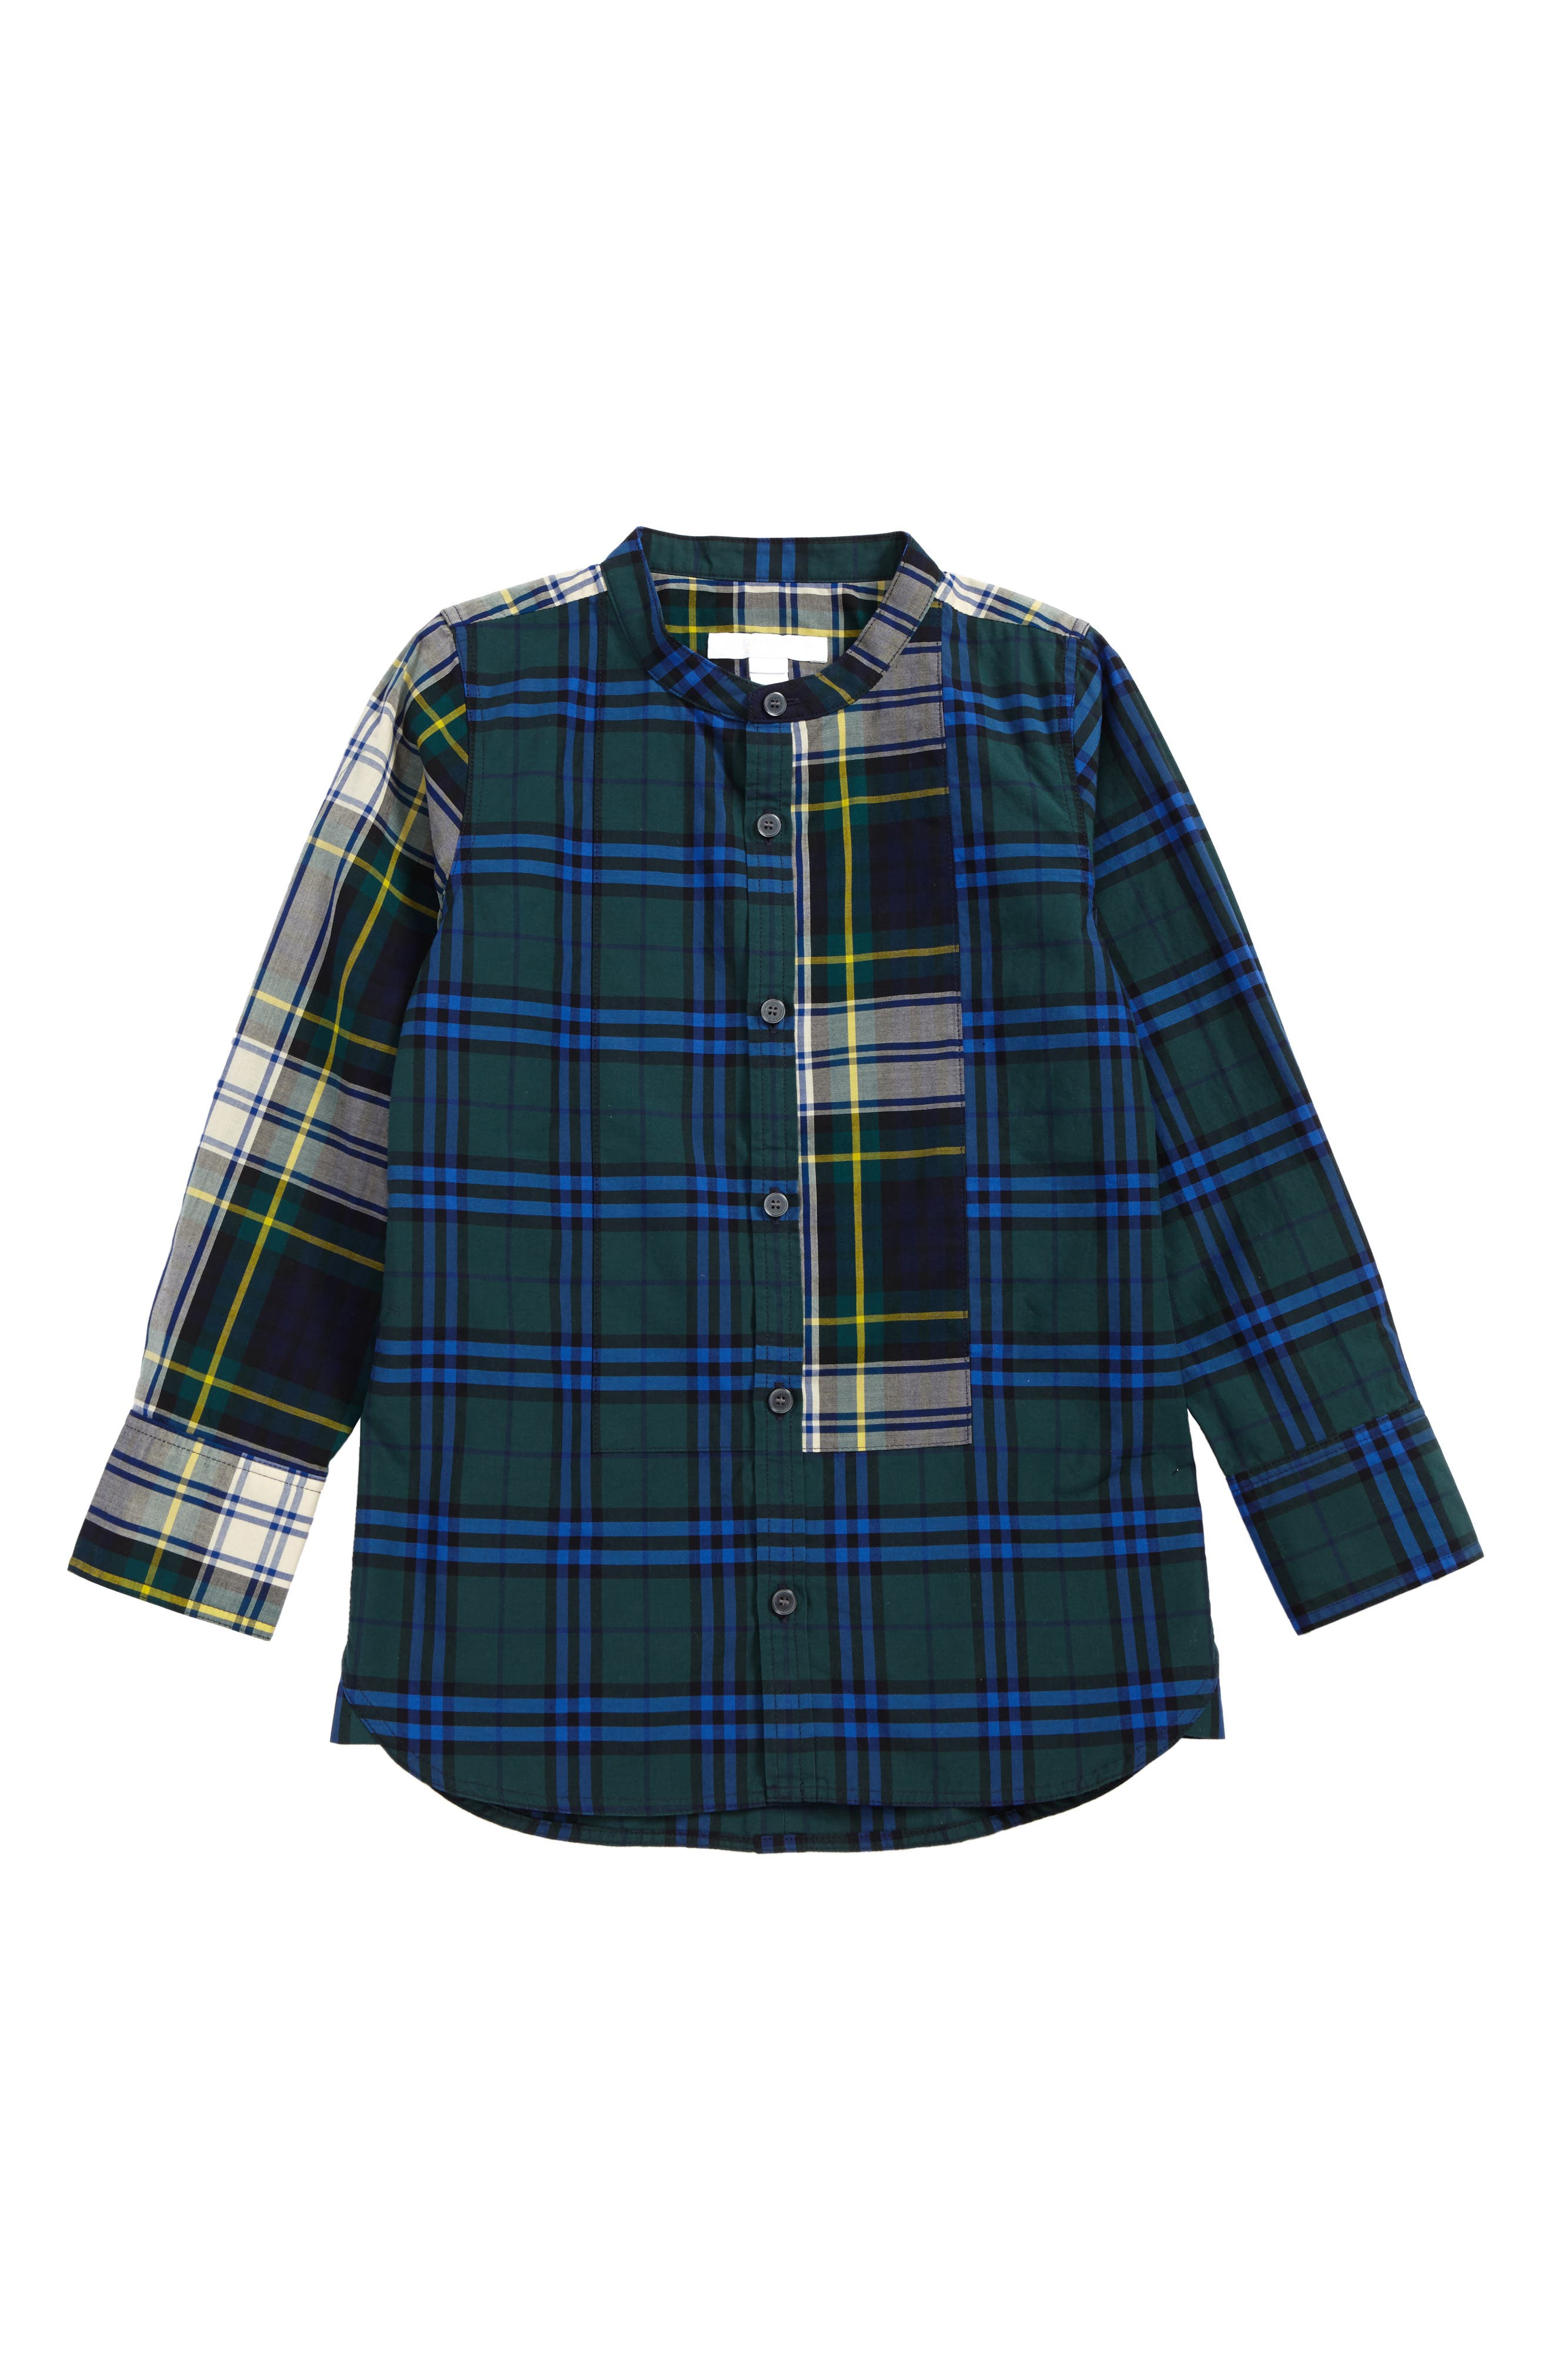 Argus Check Print Woven Shirt,                         Main,                         color, Forest Green